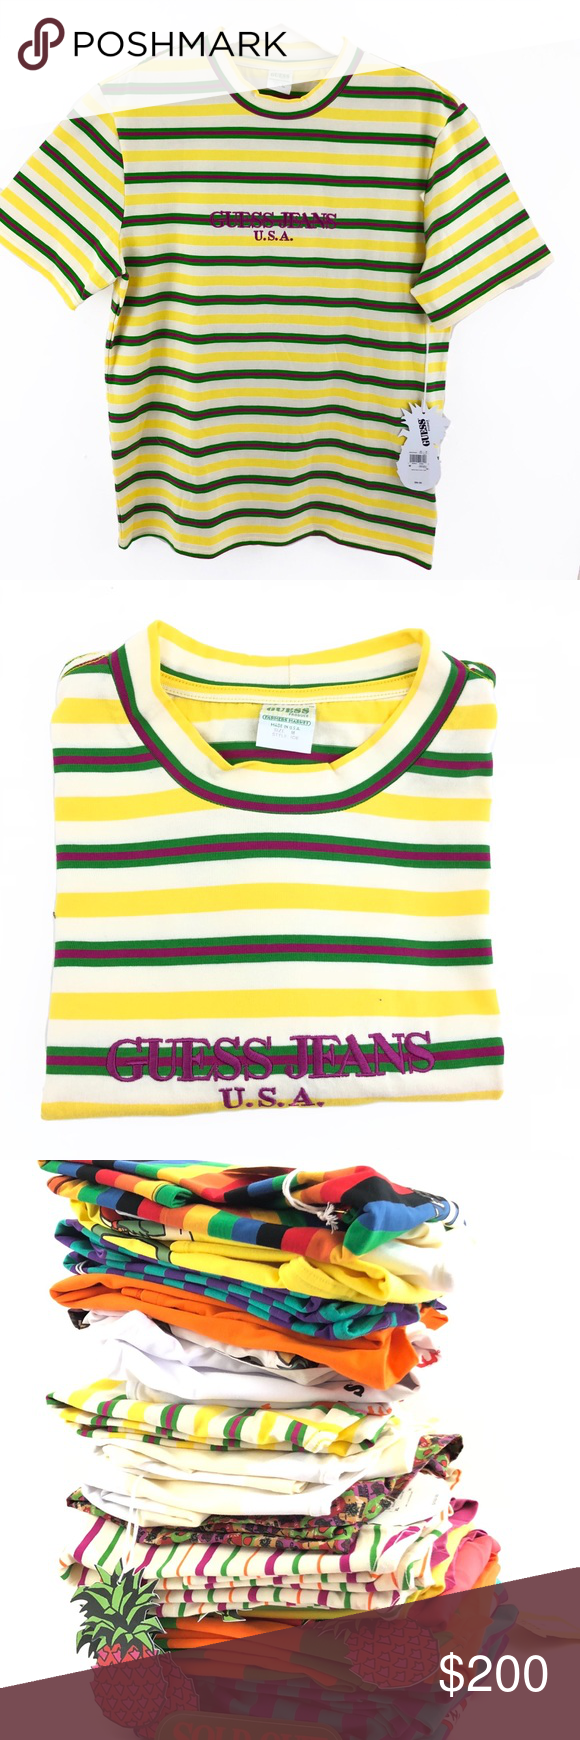 114ff4085ff Guess jeans X Sean Wotherspoon Striped T-shirt Guess jeans farmers market X Sean  Wotherspoon Pineapple Striped t shirt Sold out! Guess Shirts Tees - Short  ...